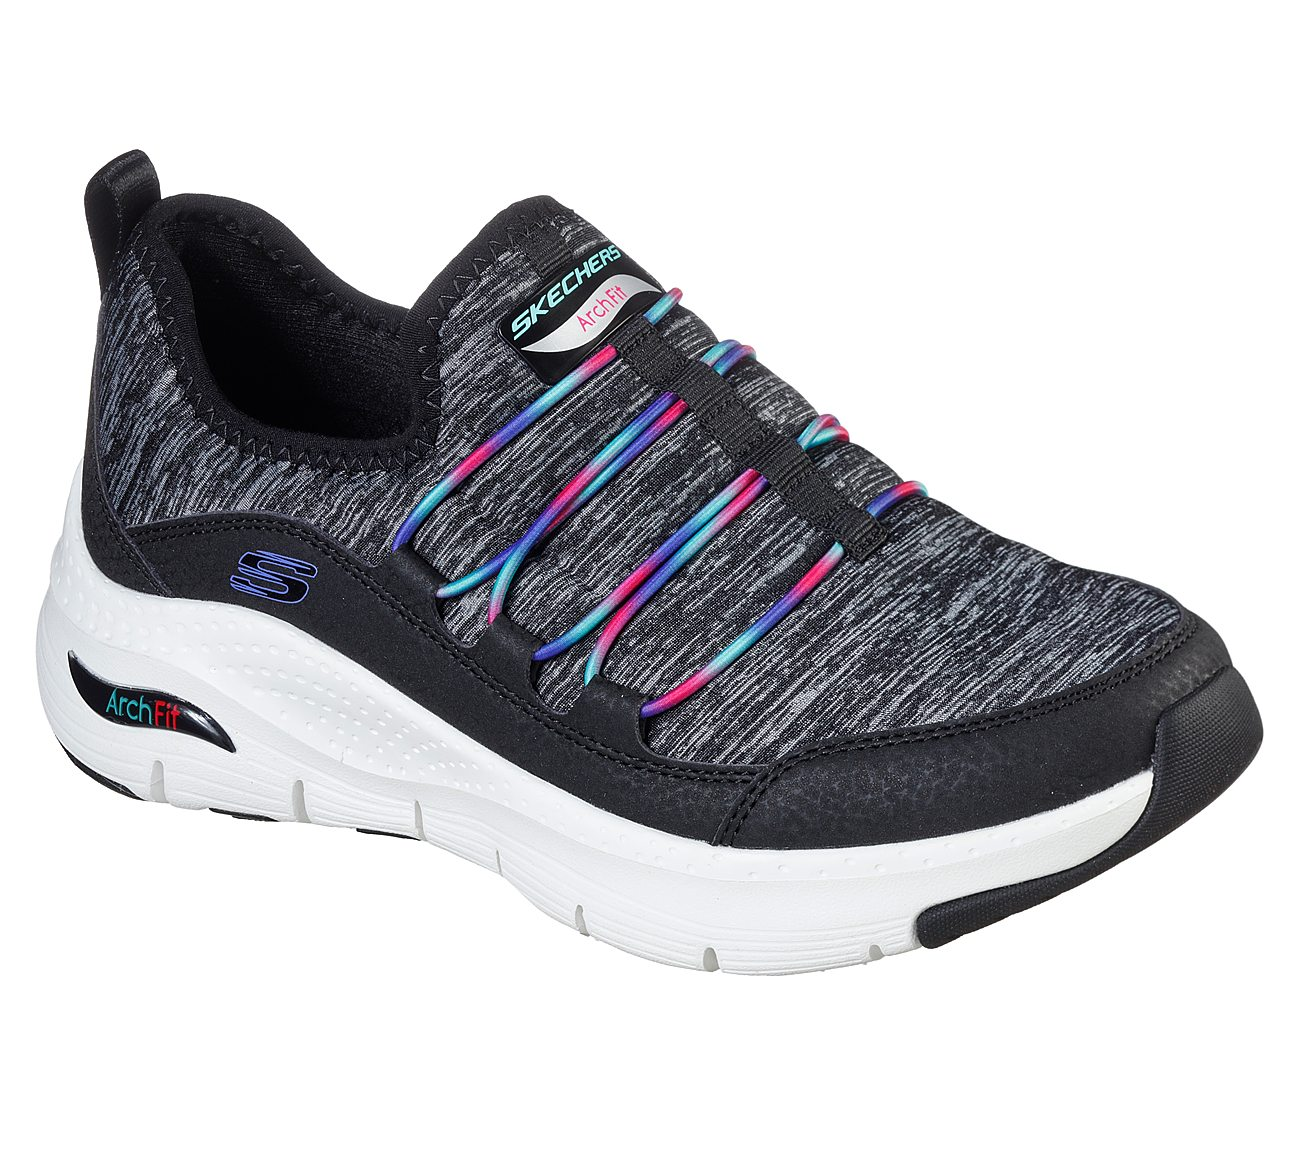 Rainbow View Skechers Arch Fit Shoes